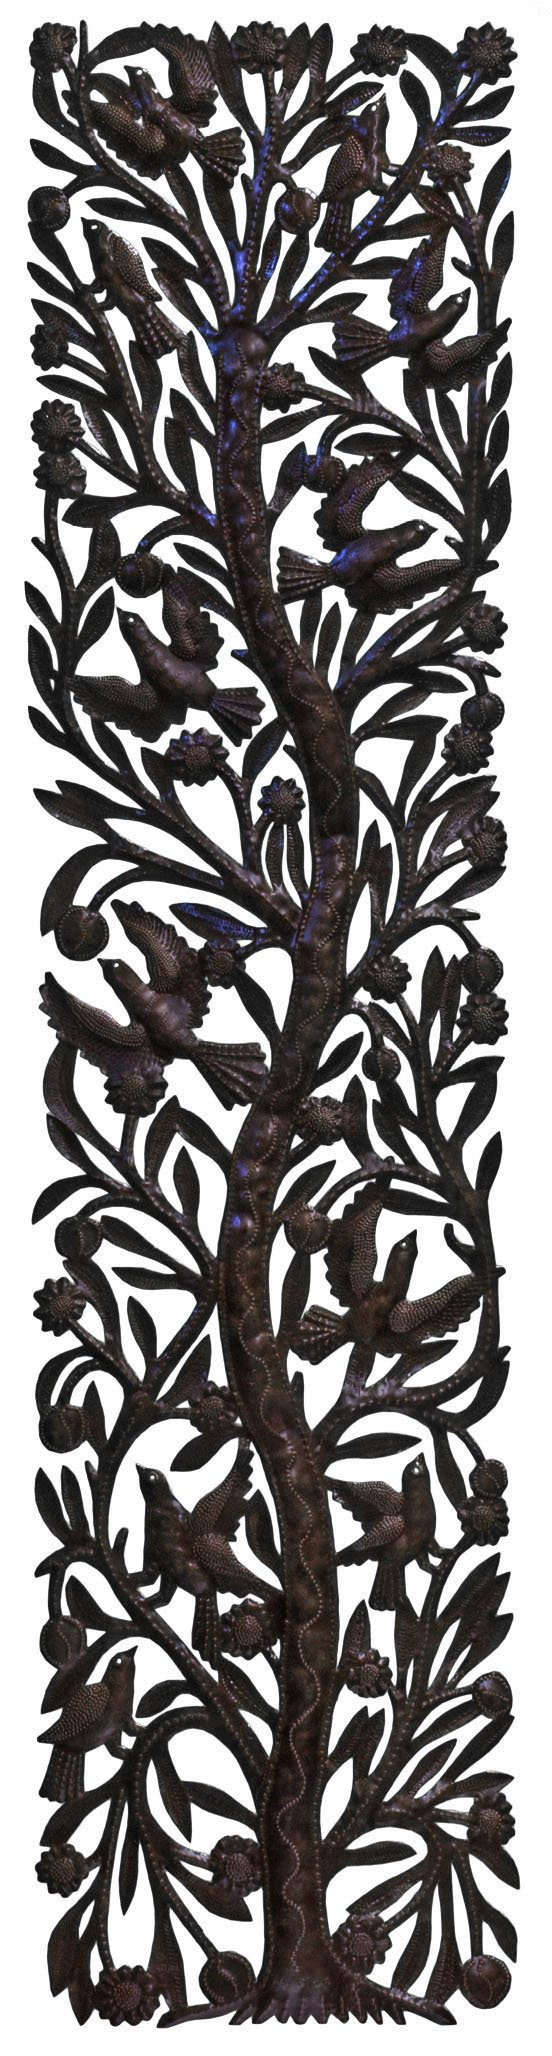 Le Primitif Galleries Haitian Recycled Steel Oil Drum Outdoor Decor, 72 by 14-Inch, Limited Edition Tree of Life No. 1